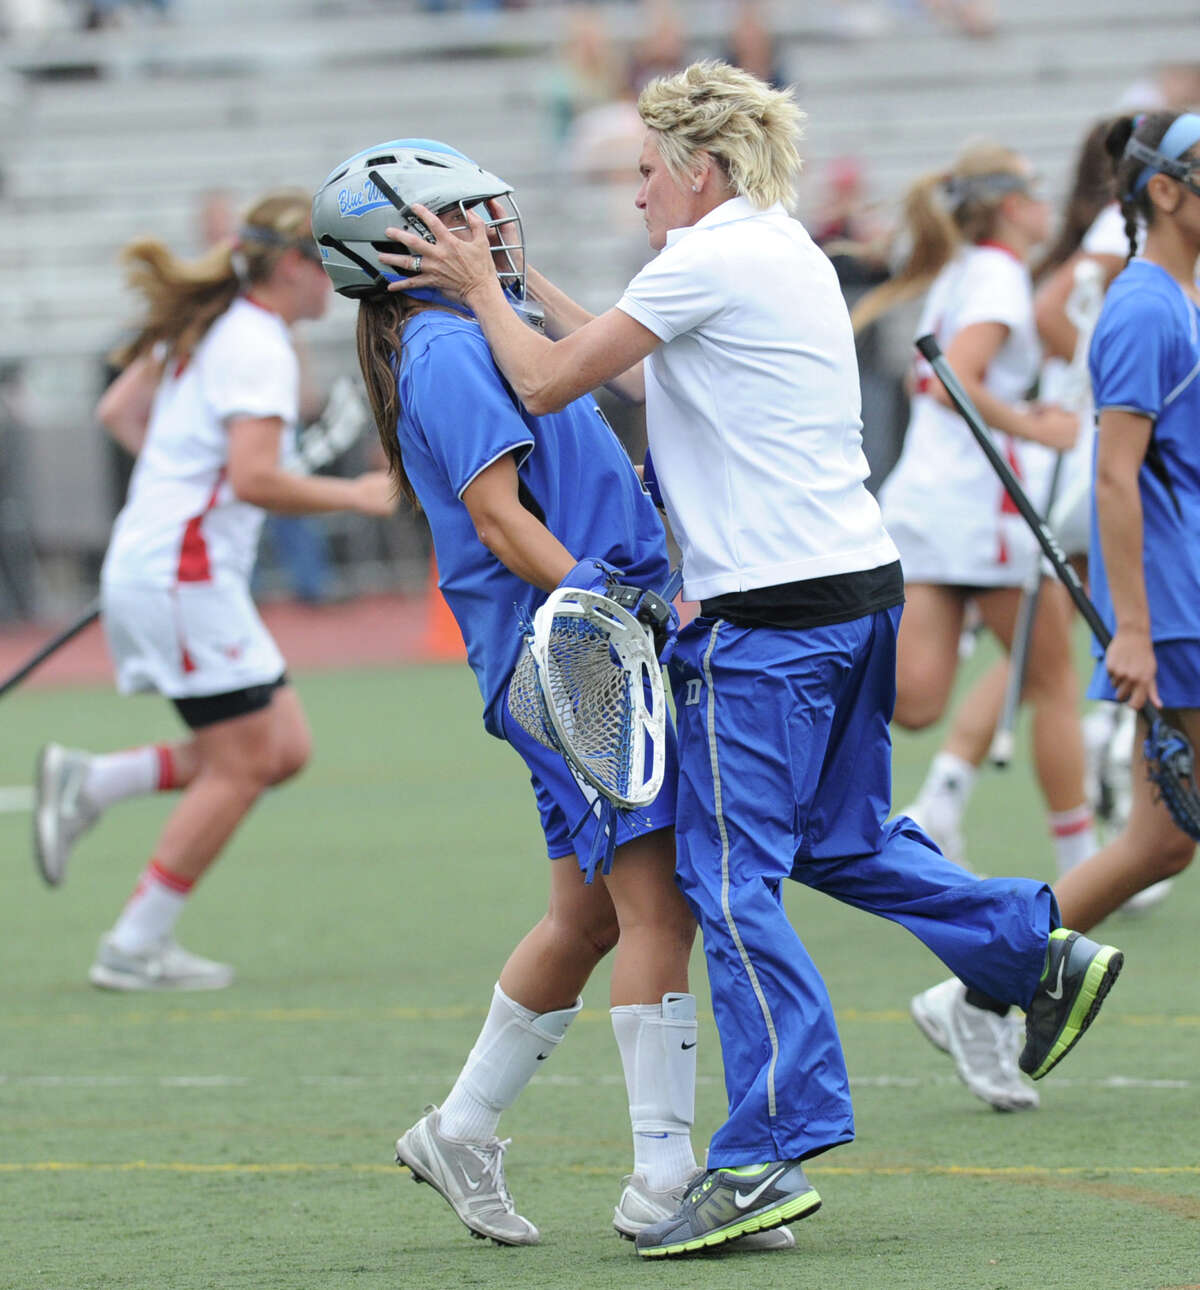 Darien High School girls lacrosse coach Lisa Lindley, right, grabs her goalie Caylee Waters during a timeout in the first half of the FCIAC girls lacrosse finals between Greenwich High School and Darien High School at Brien McMahon High School in Norwalk, Friday, May 25, 2012.